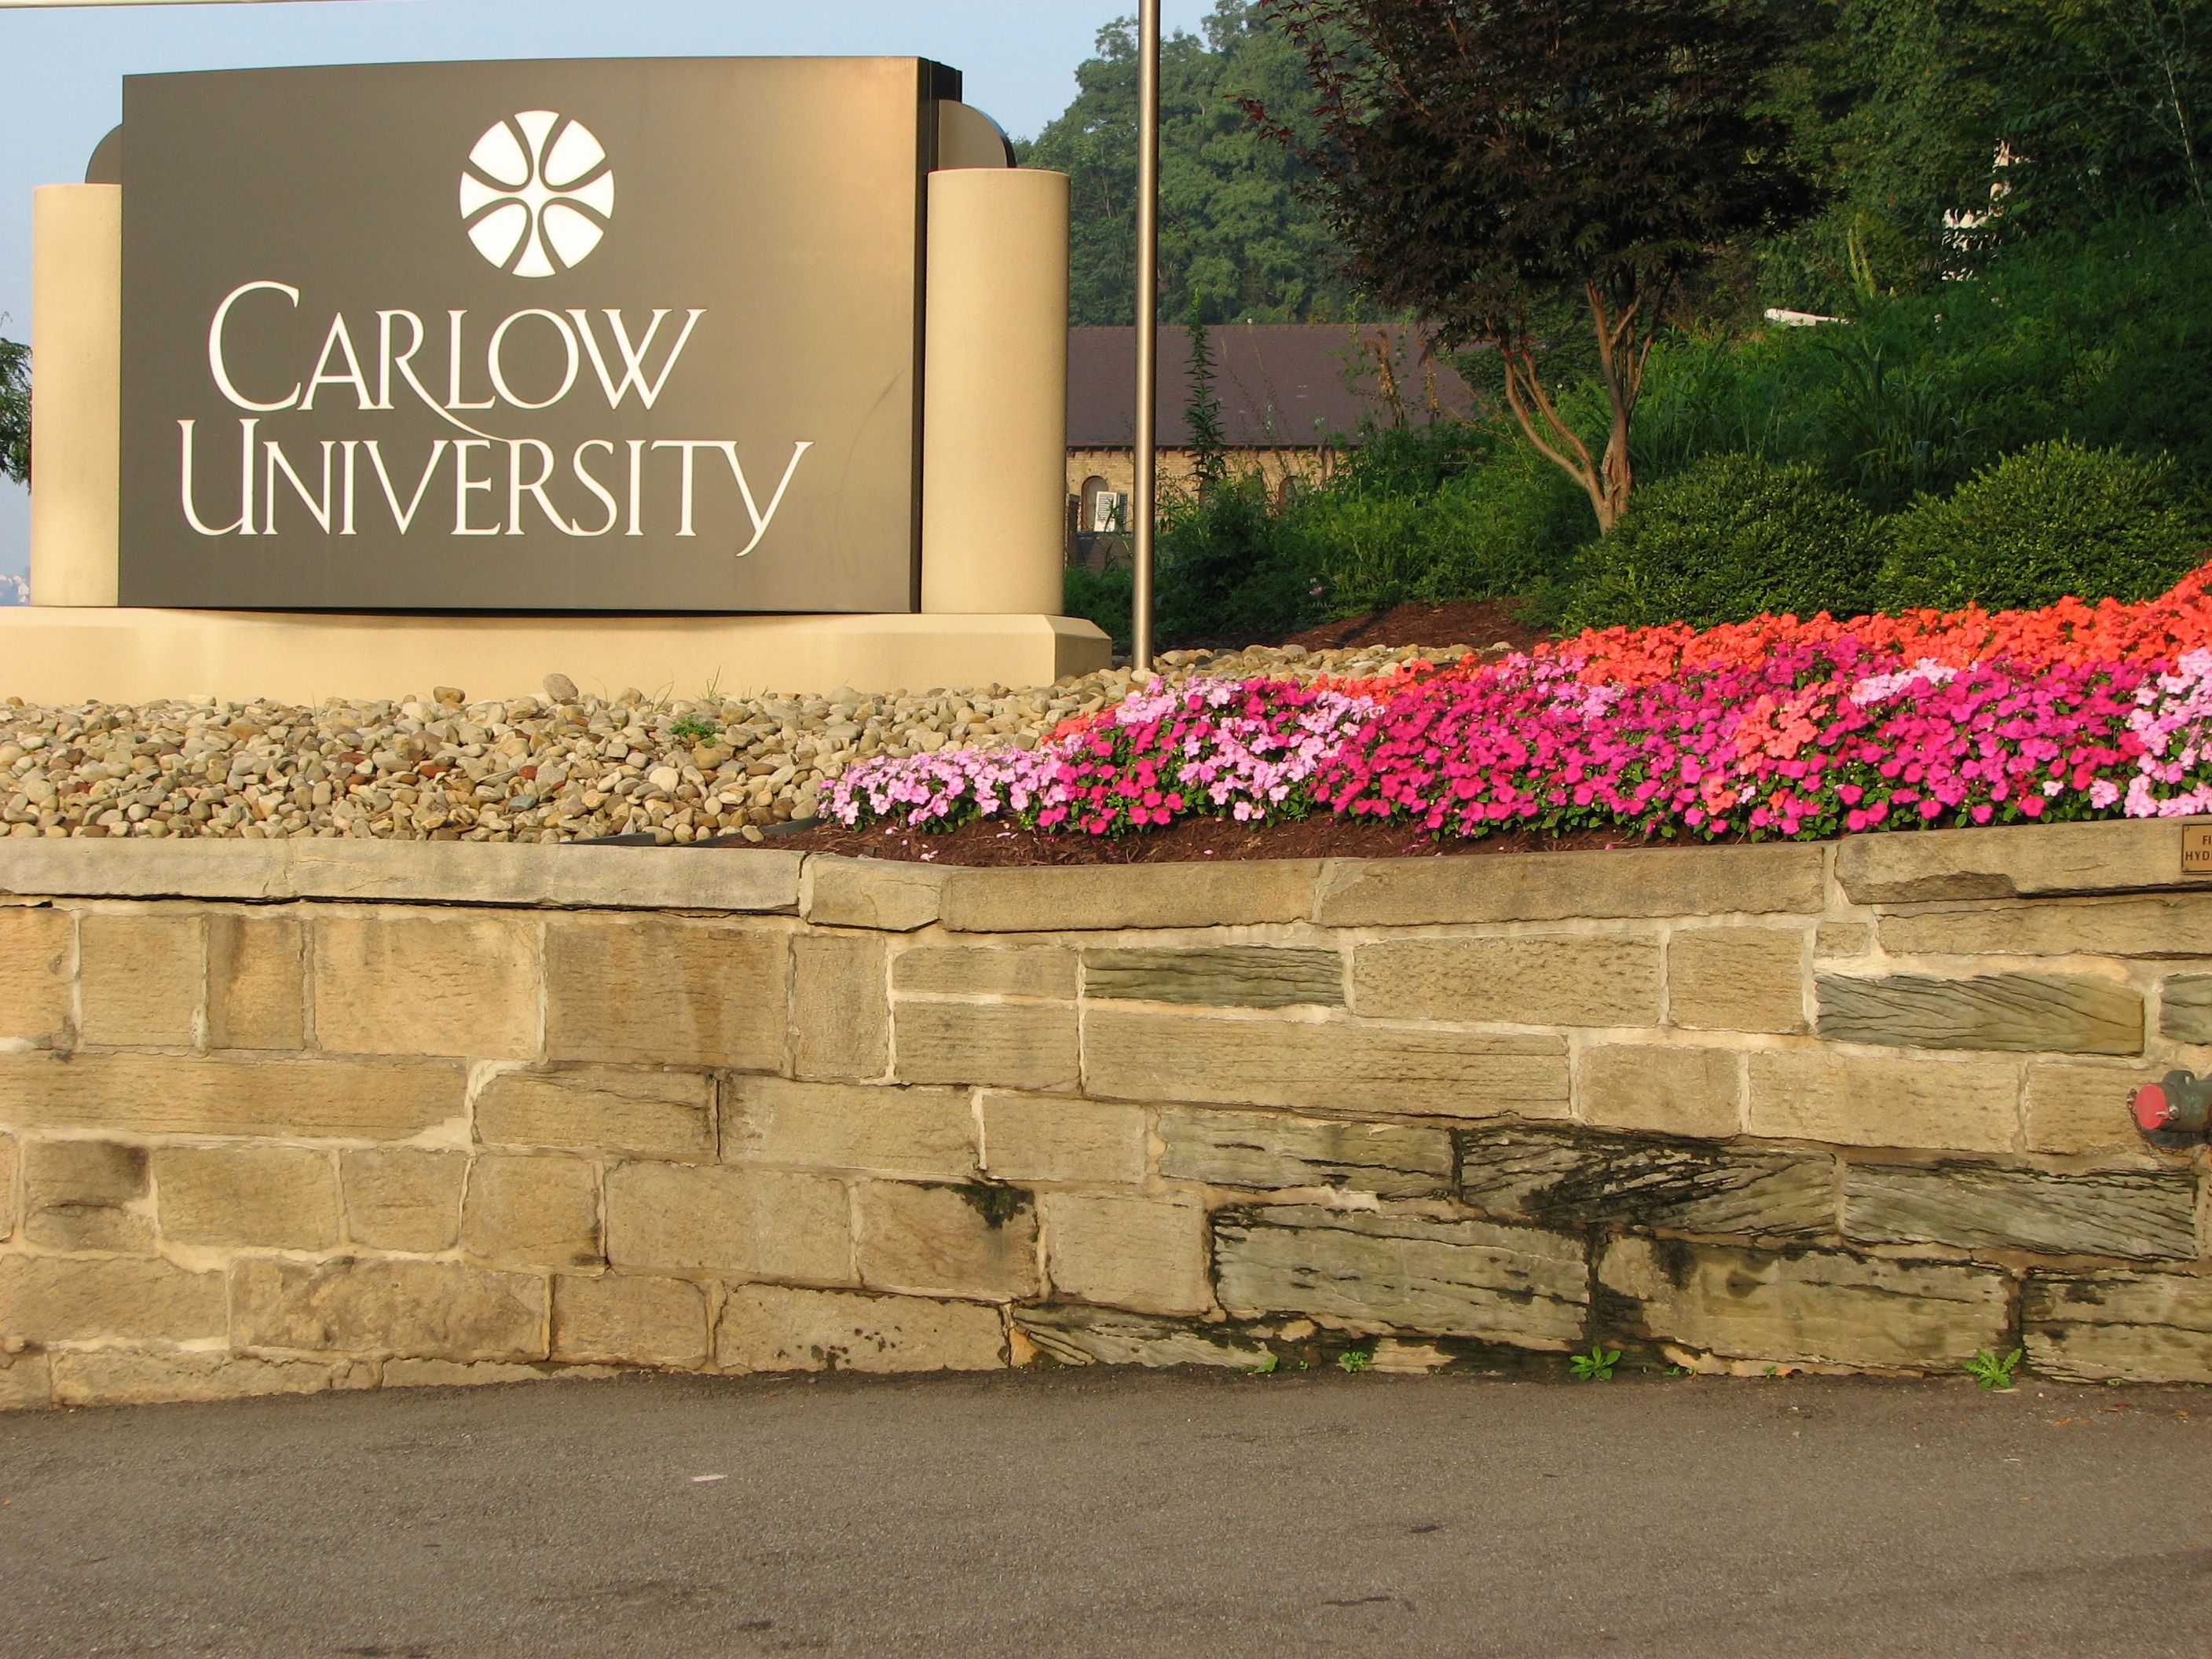 Carlow is one of the five colleges that founded PLEN! www.plen.org